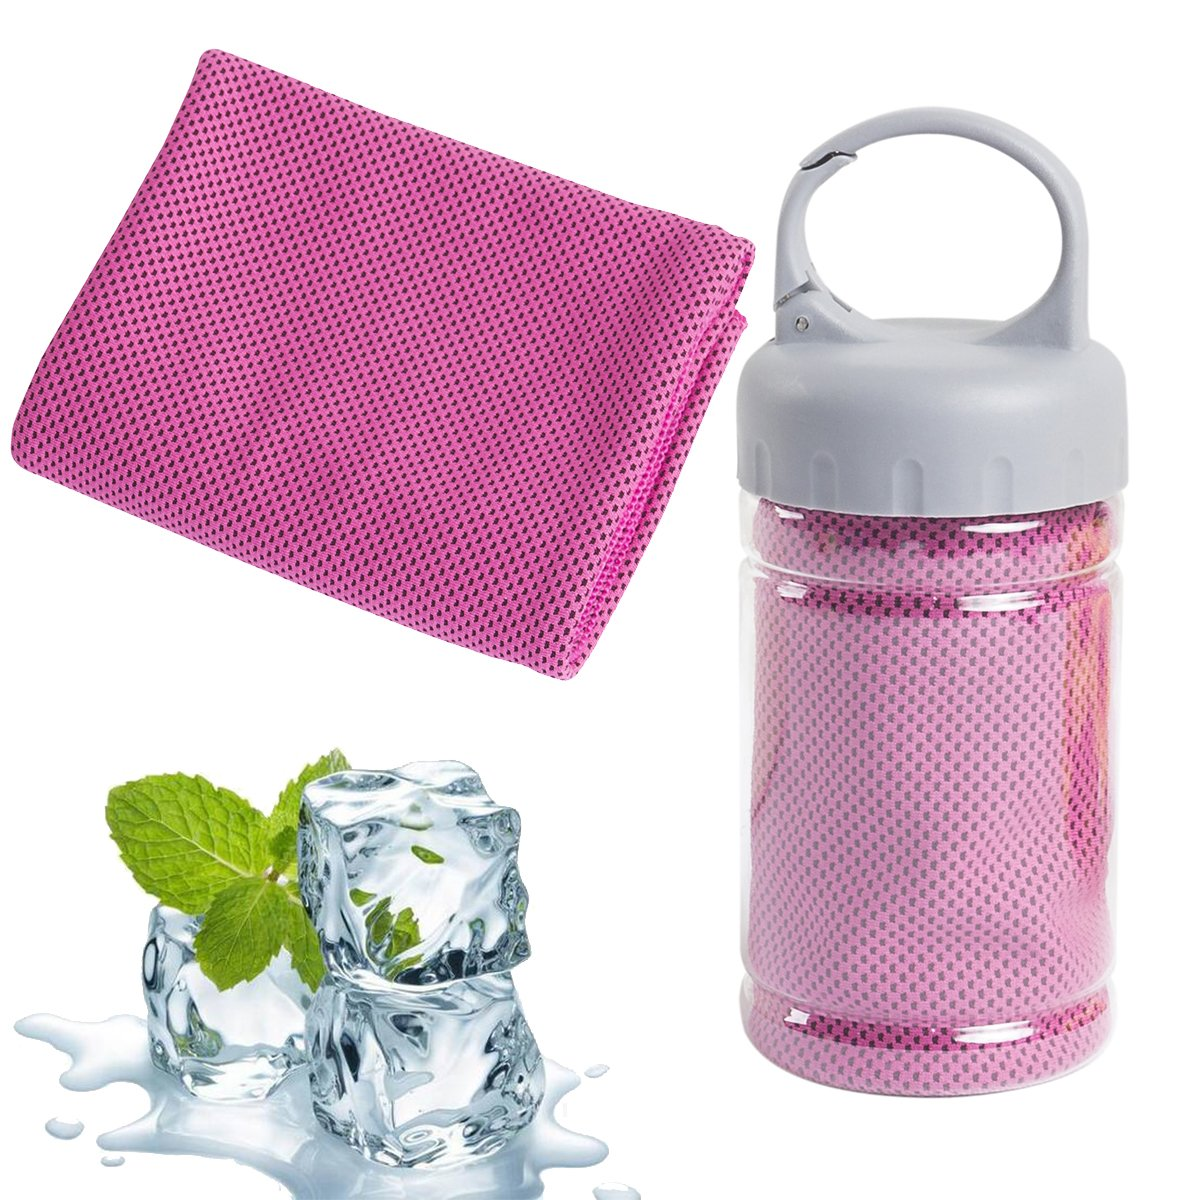 sky bule Gym Travel Workout Fitness Yoga Camping /& More Camping /& More Pilates Omenu Cooling Towel for Sports